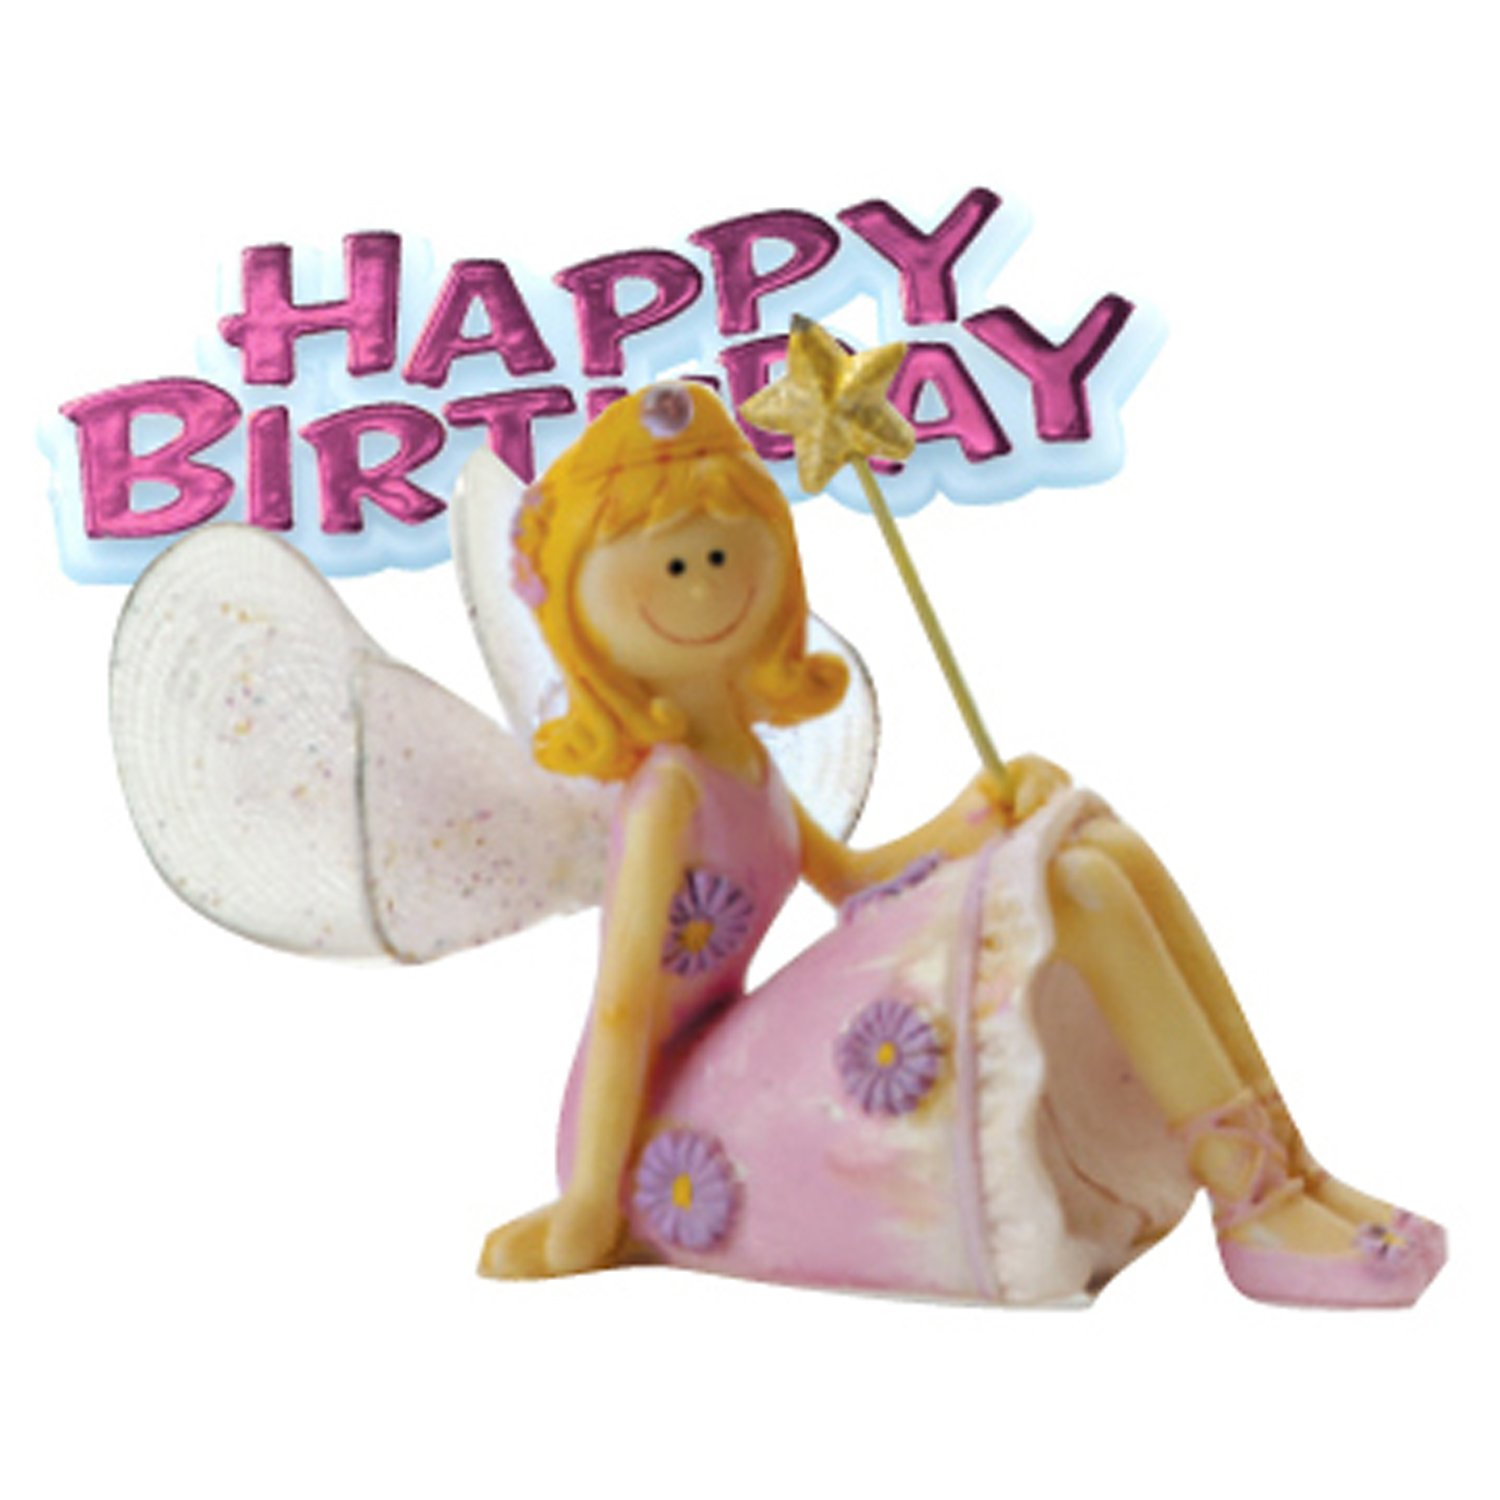 Princess Fairy Sugarcraft Cake Toppers